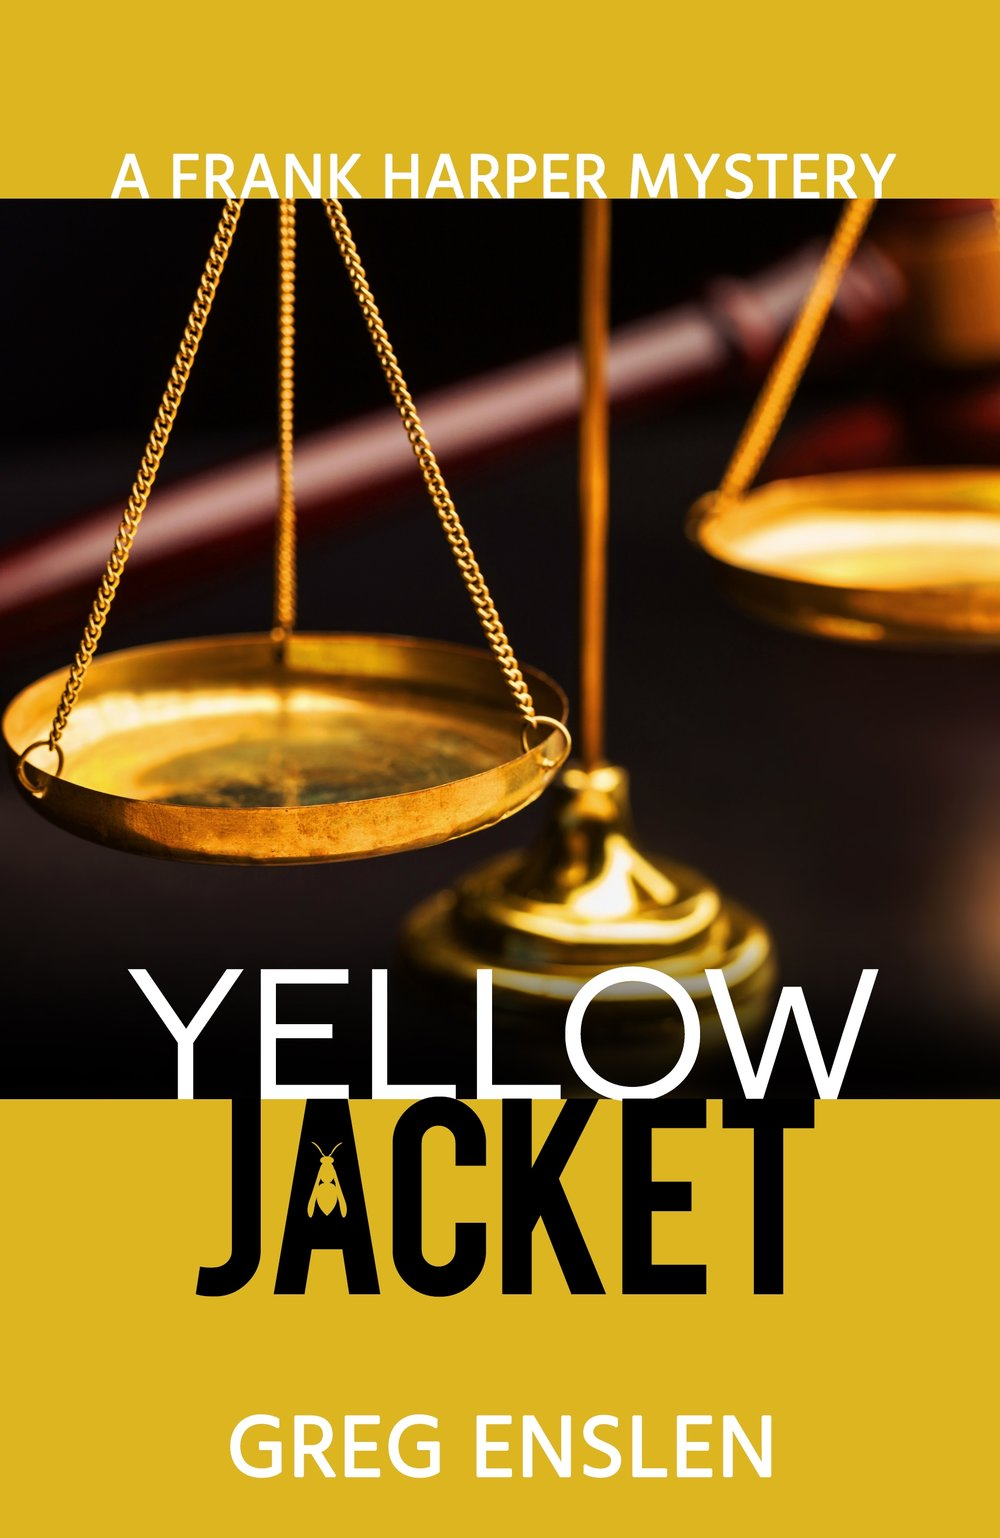 26 Yellow Jacket full.jpg